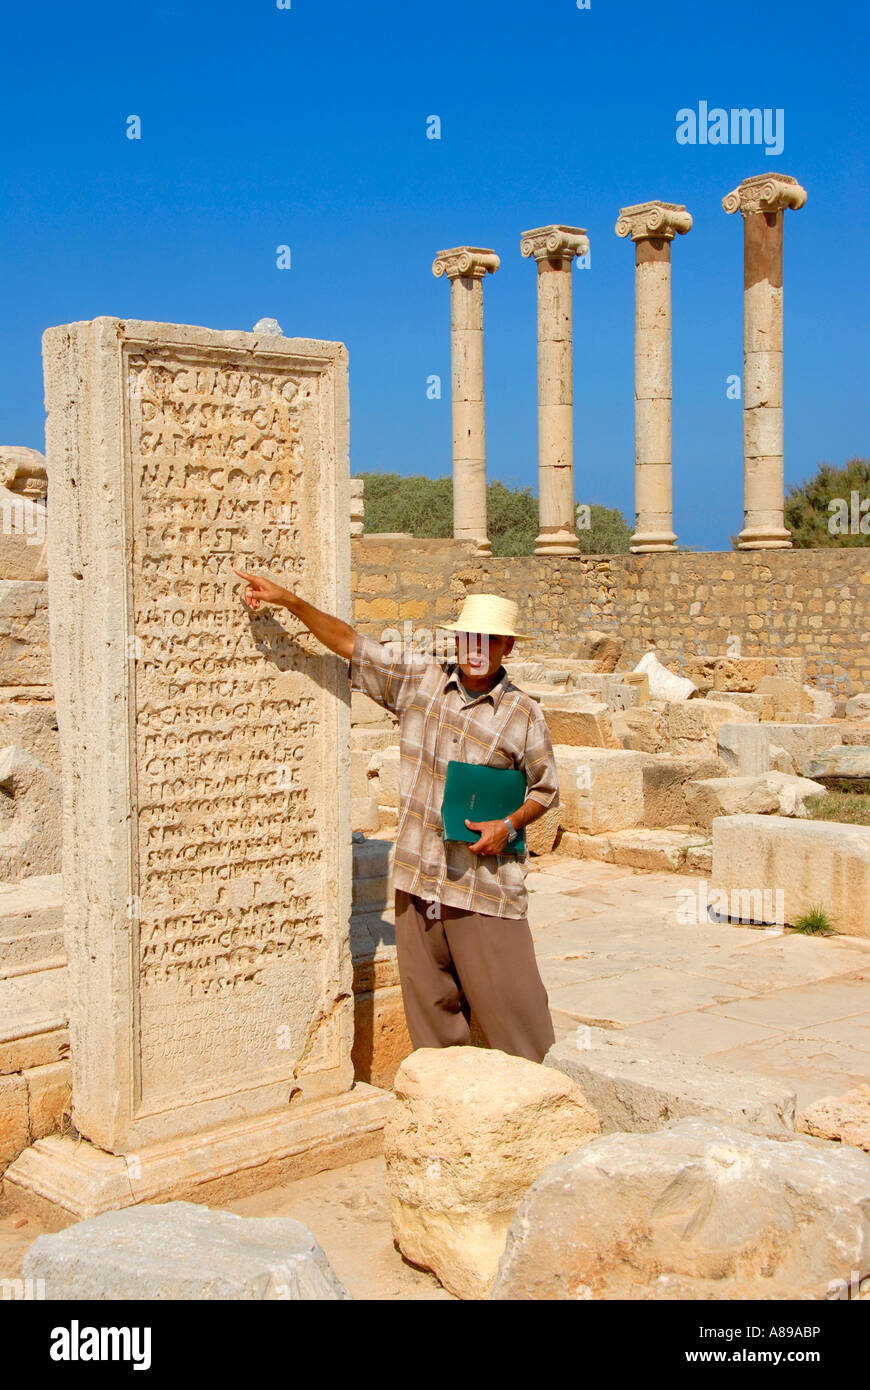 Local guide translates inscription on stone plate old forum Leptis Magna Libya - Stock Image